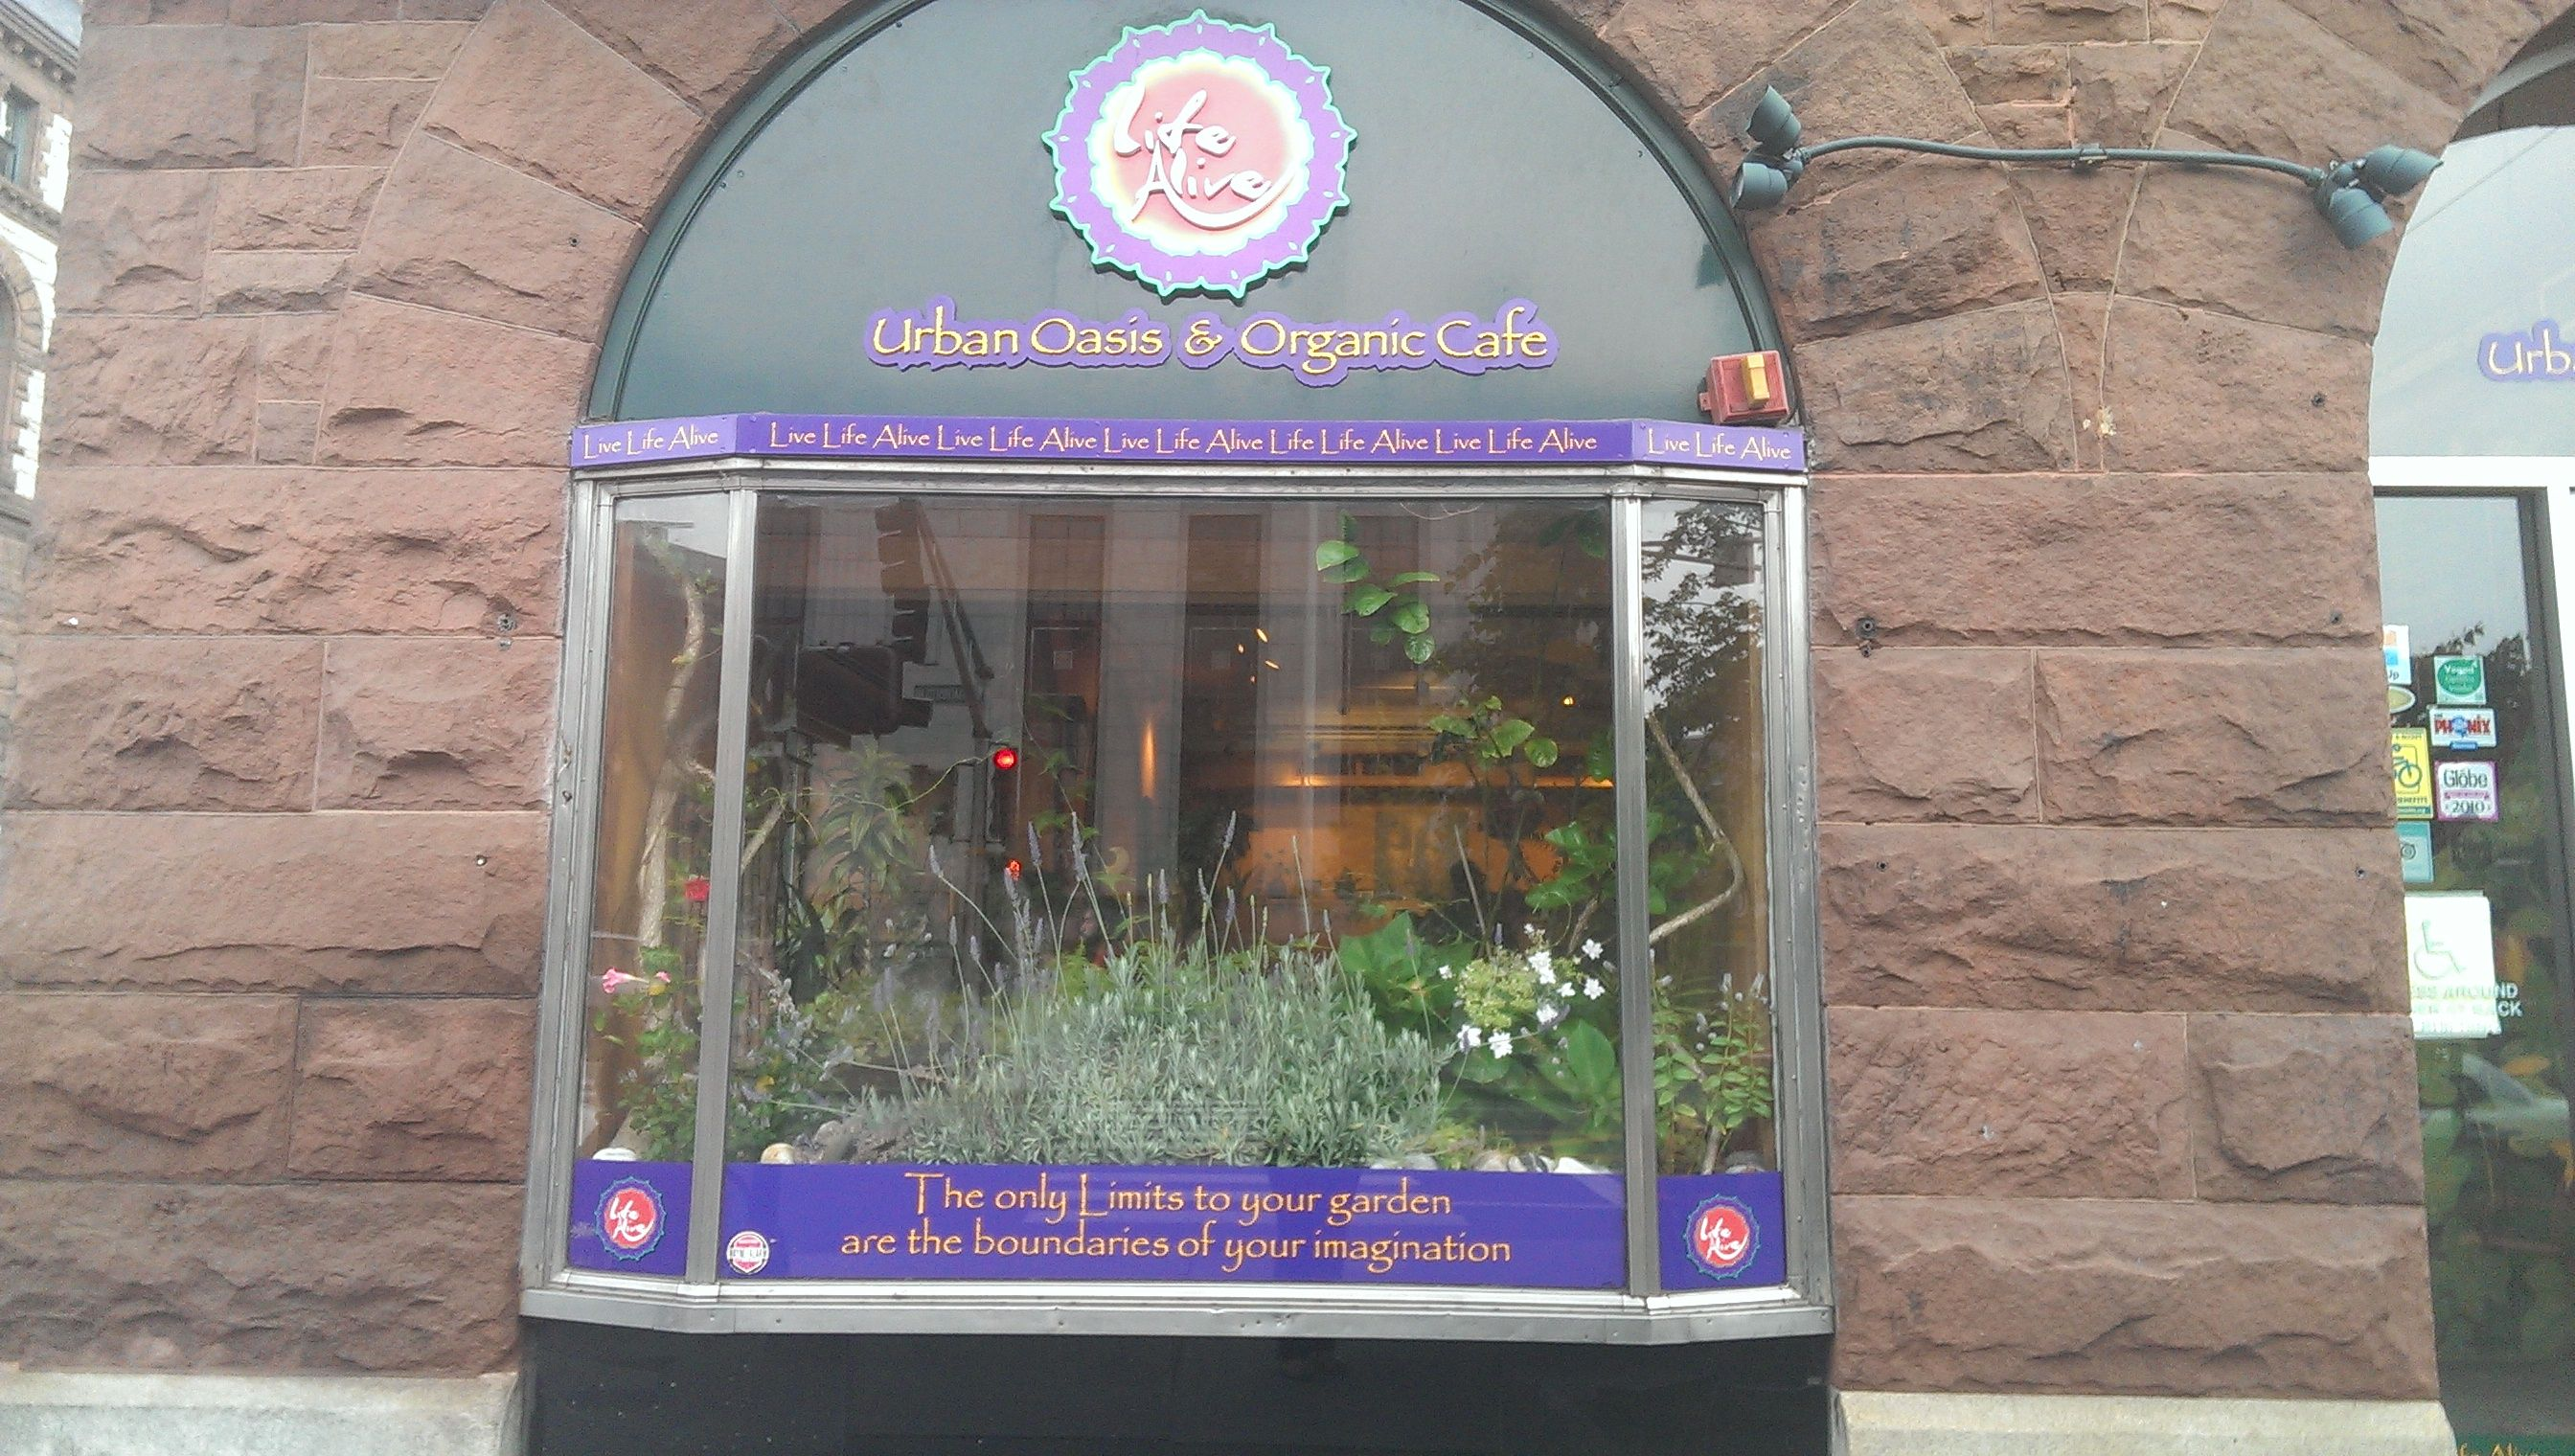 A street view of life alive cafe urban oasis organic